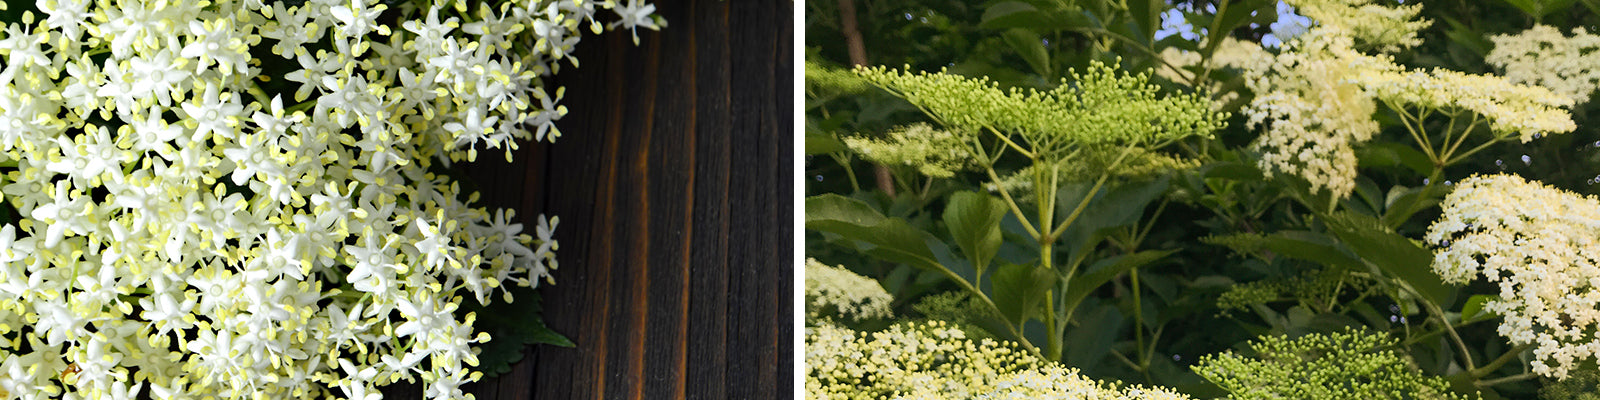 elderflower header